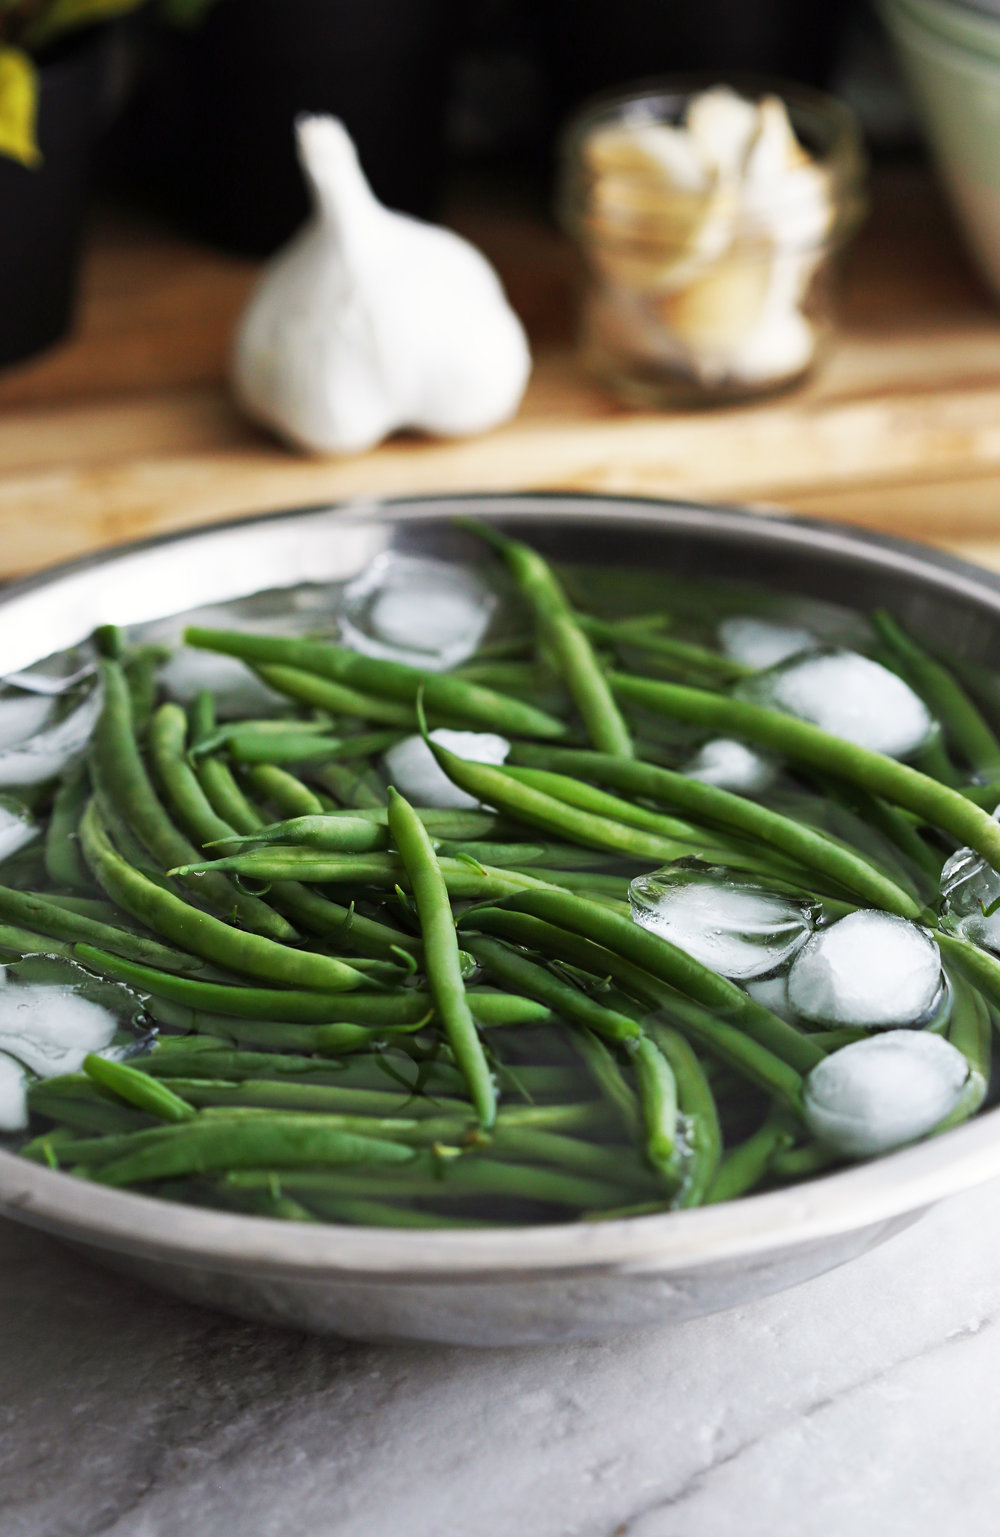 Blanched French green beans in an ice bath.